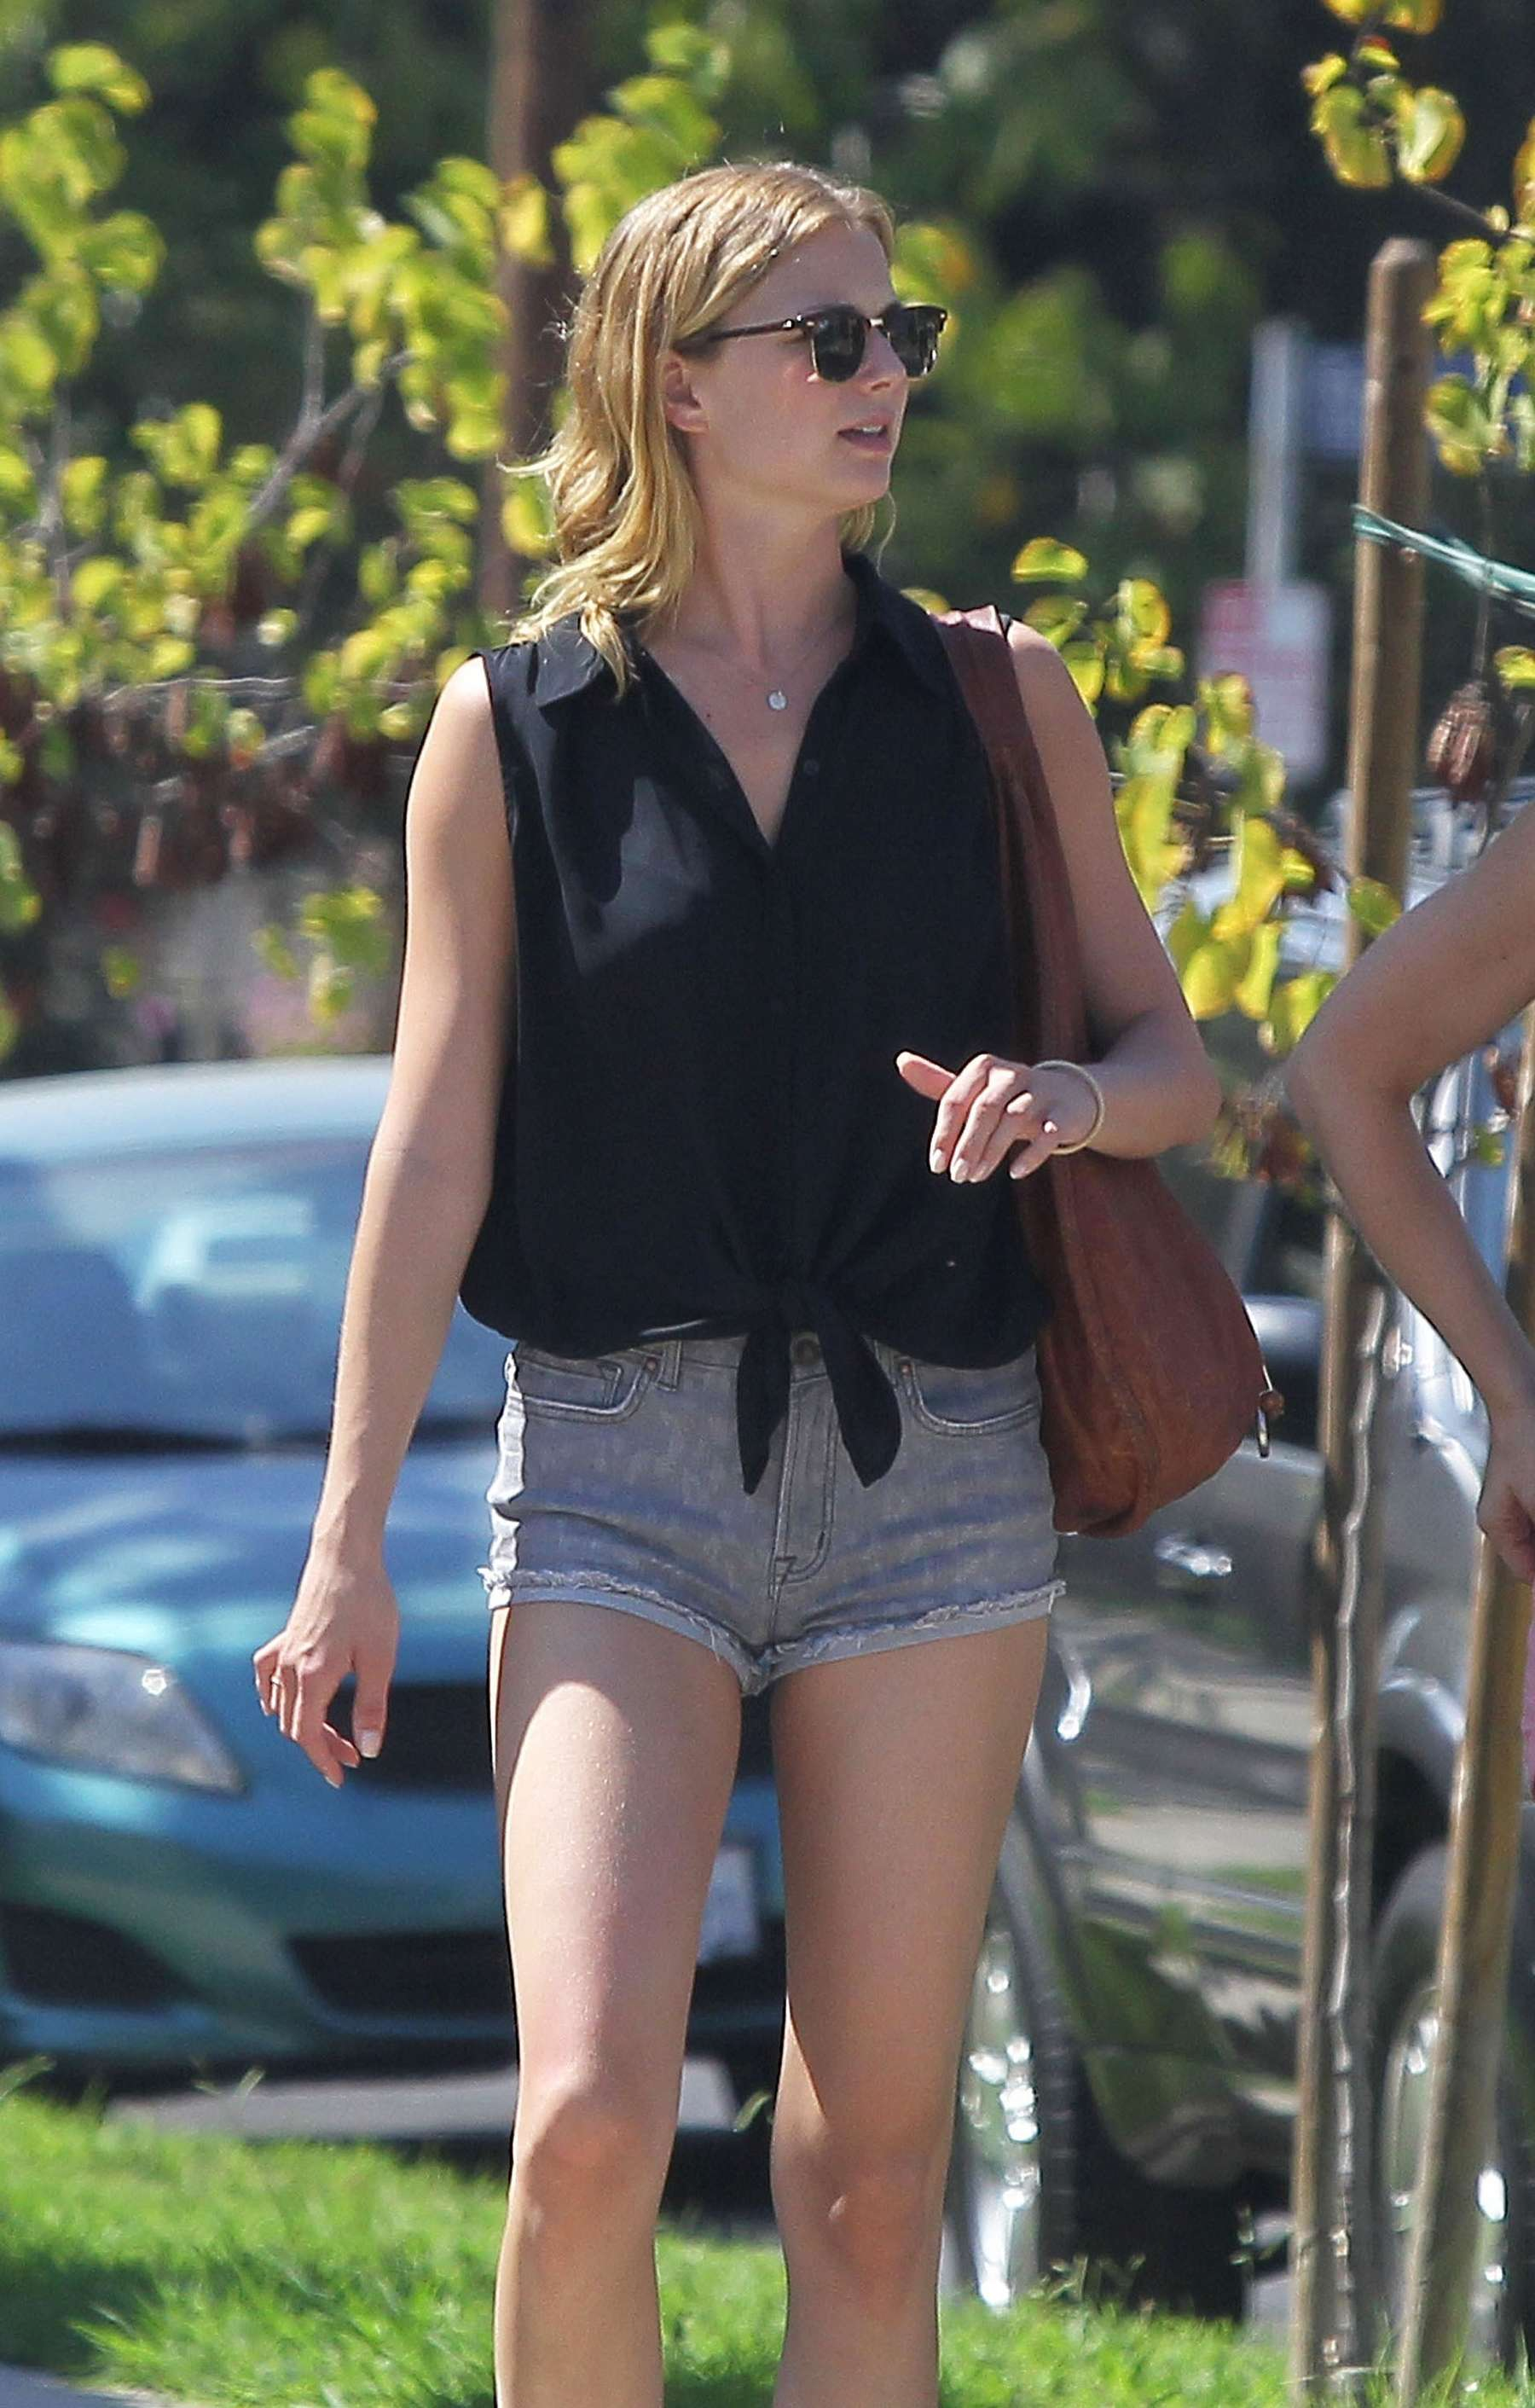 Emily VanCamp showing legs in denim shorts at Mustard Seed Cafe in Los Feliz